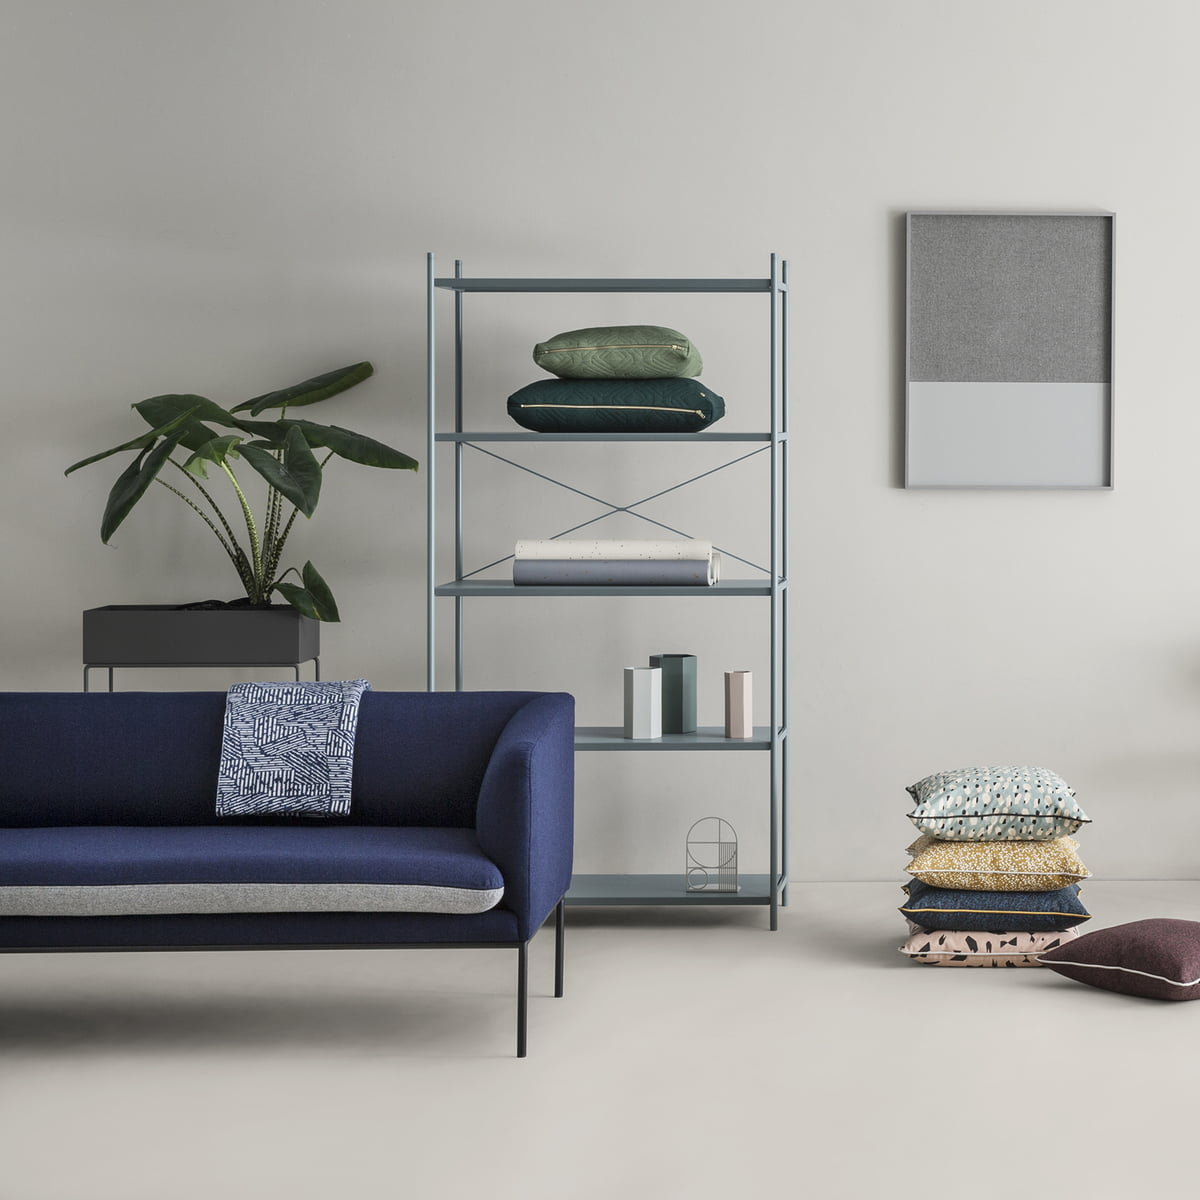 Charmant Products From Ferm Living Combined